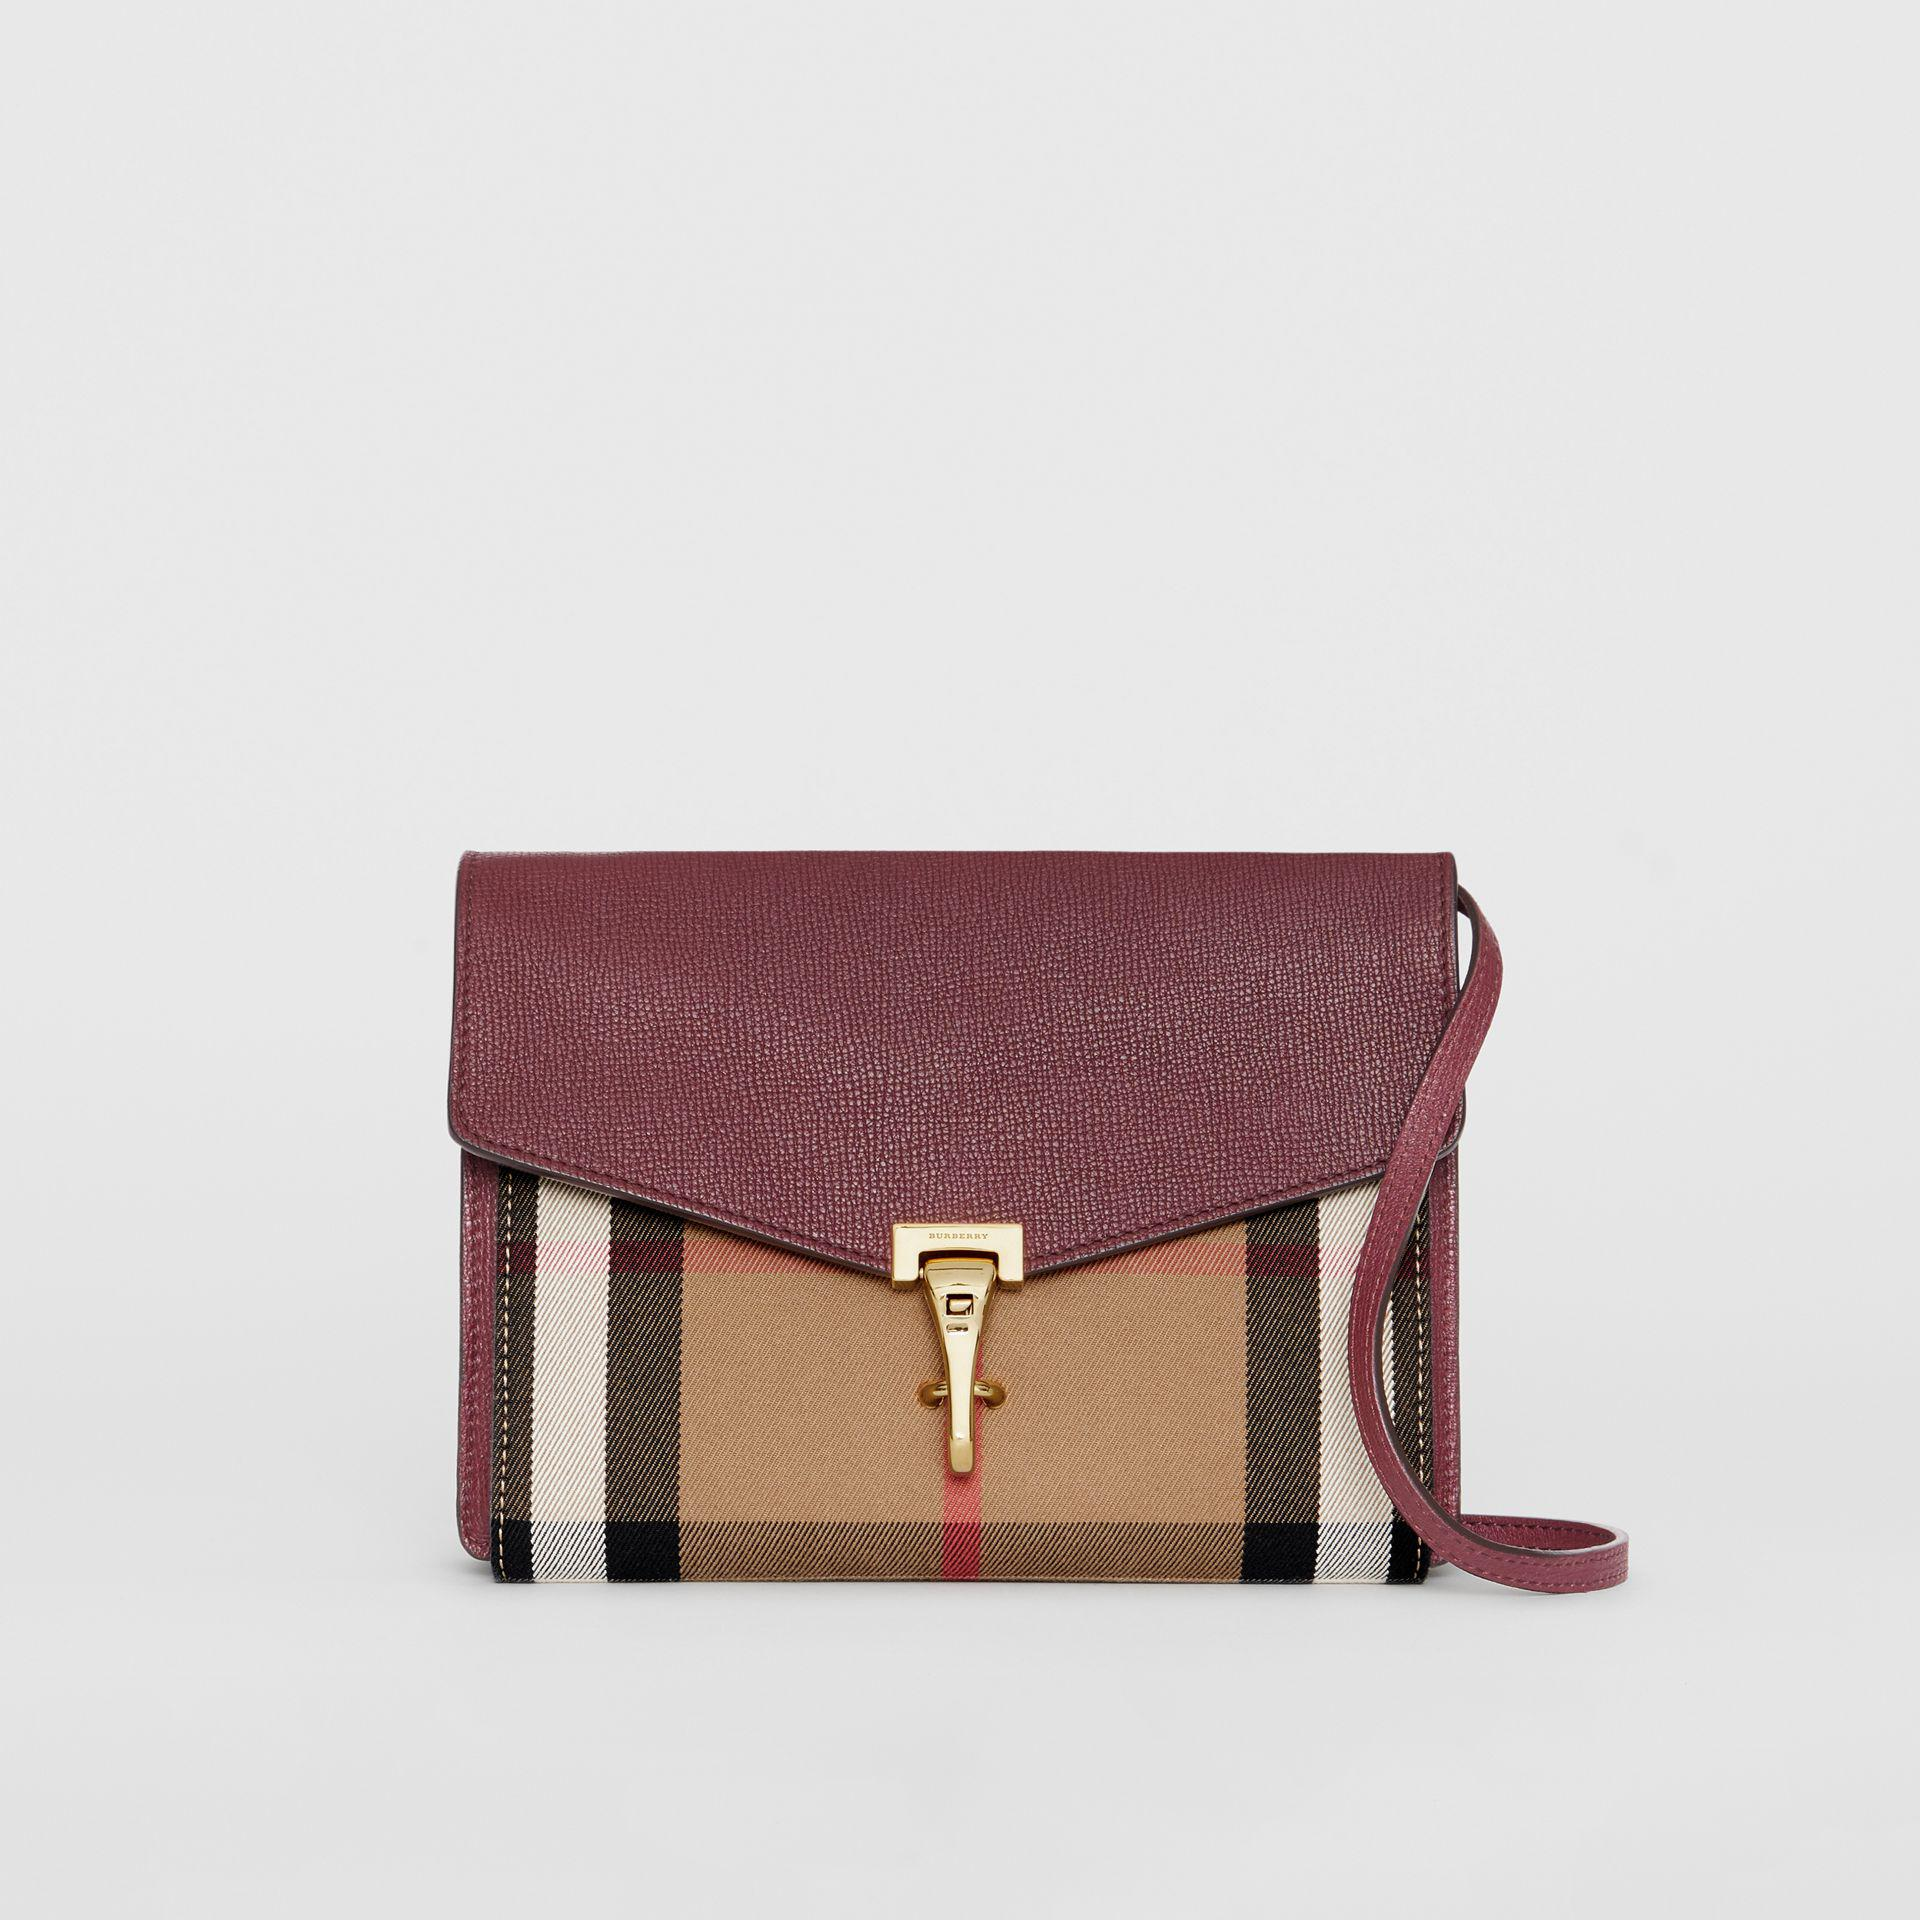 2e1b9874096a Burberry Small Leather And House Check Cross-Body Bag in Brown - Lyst